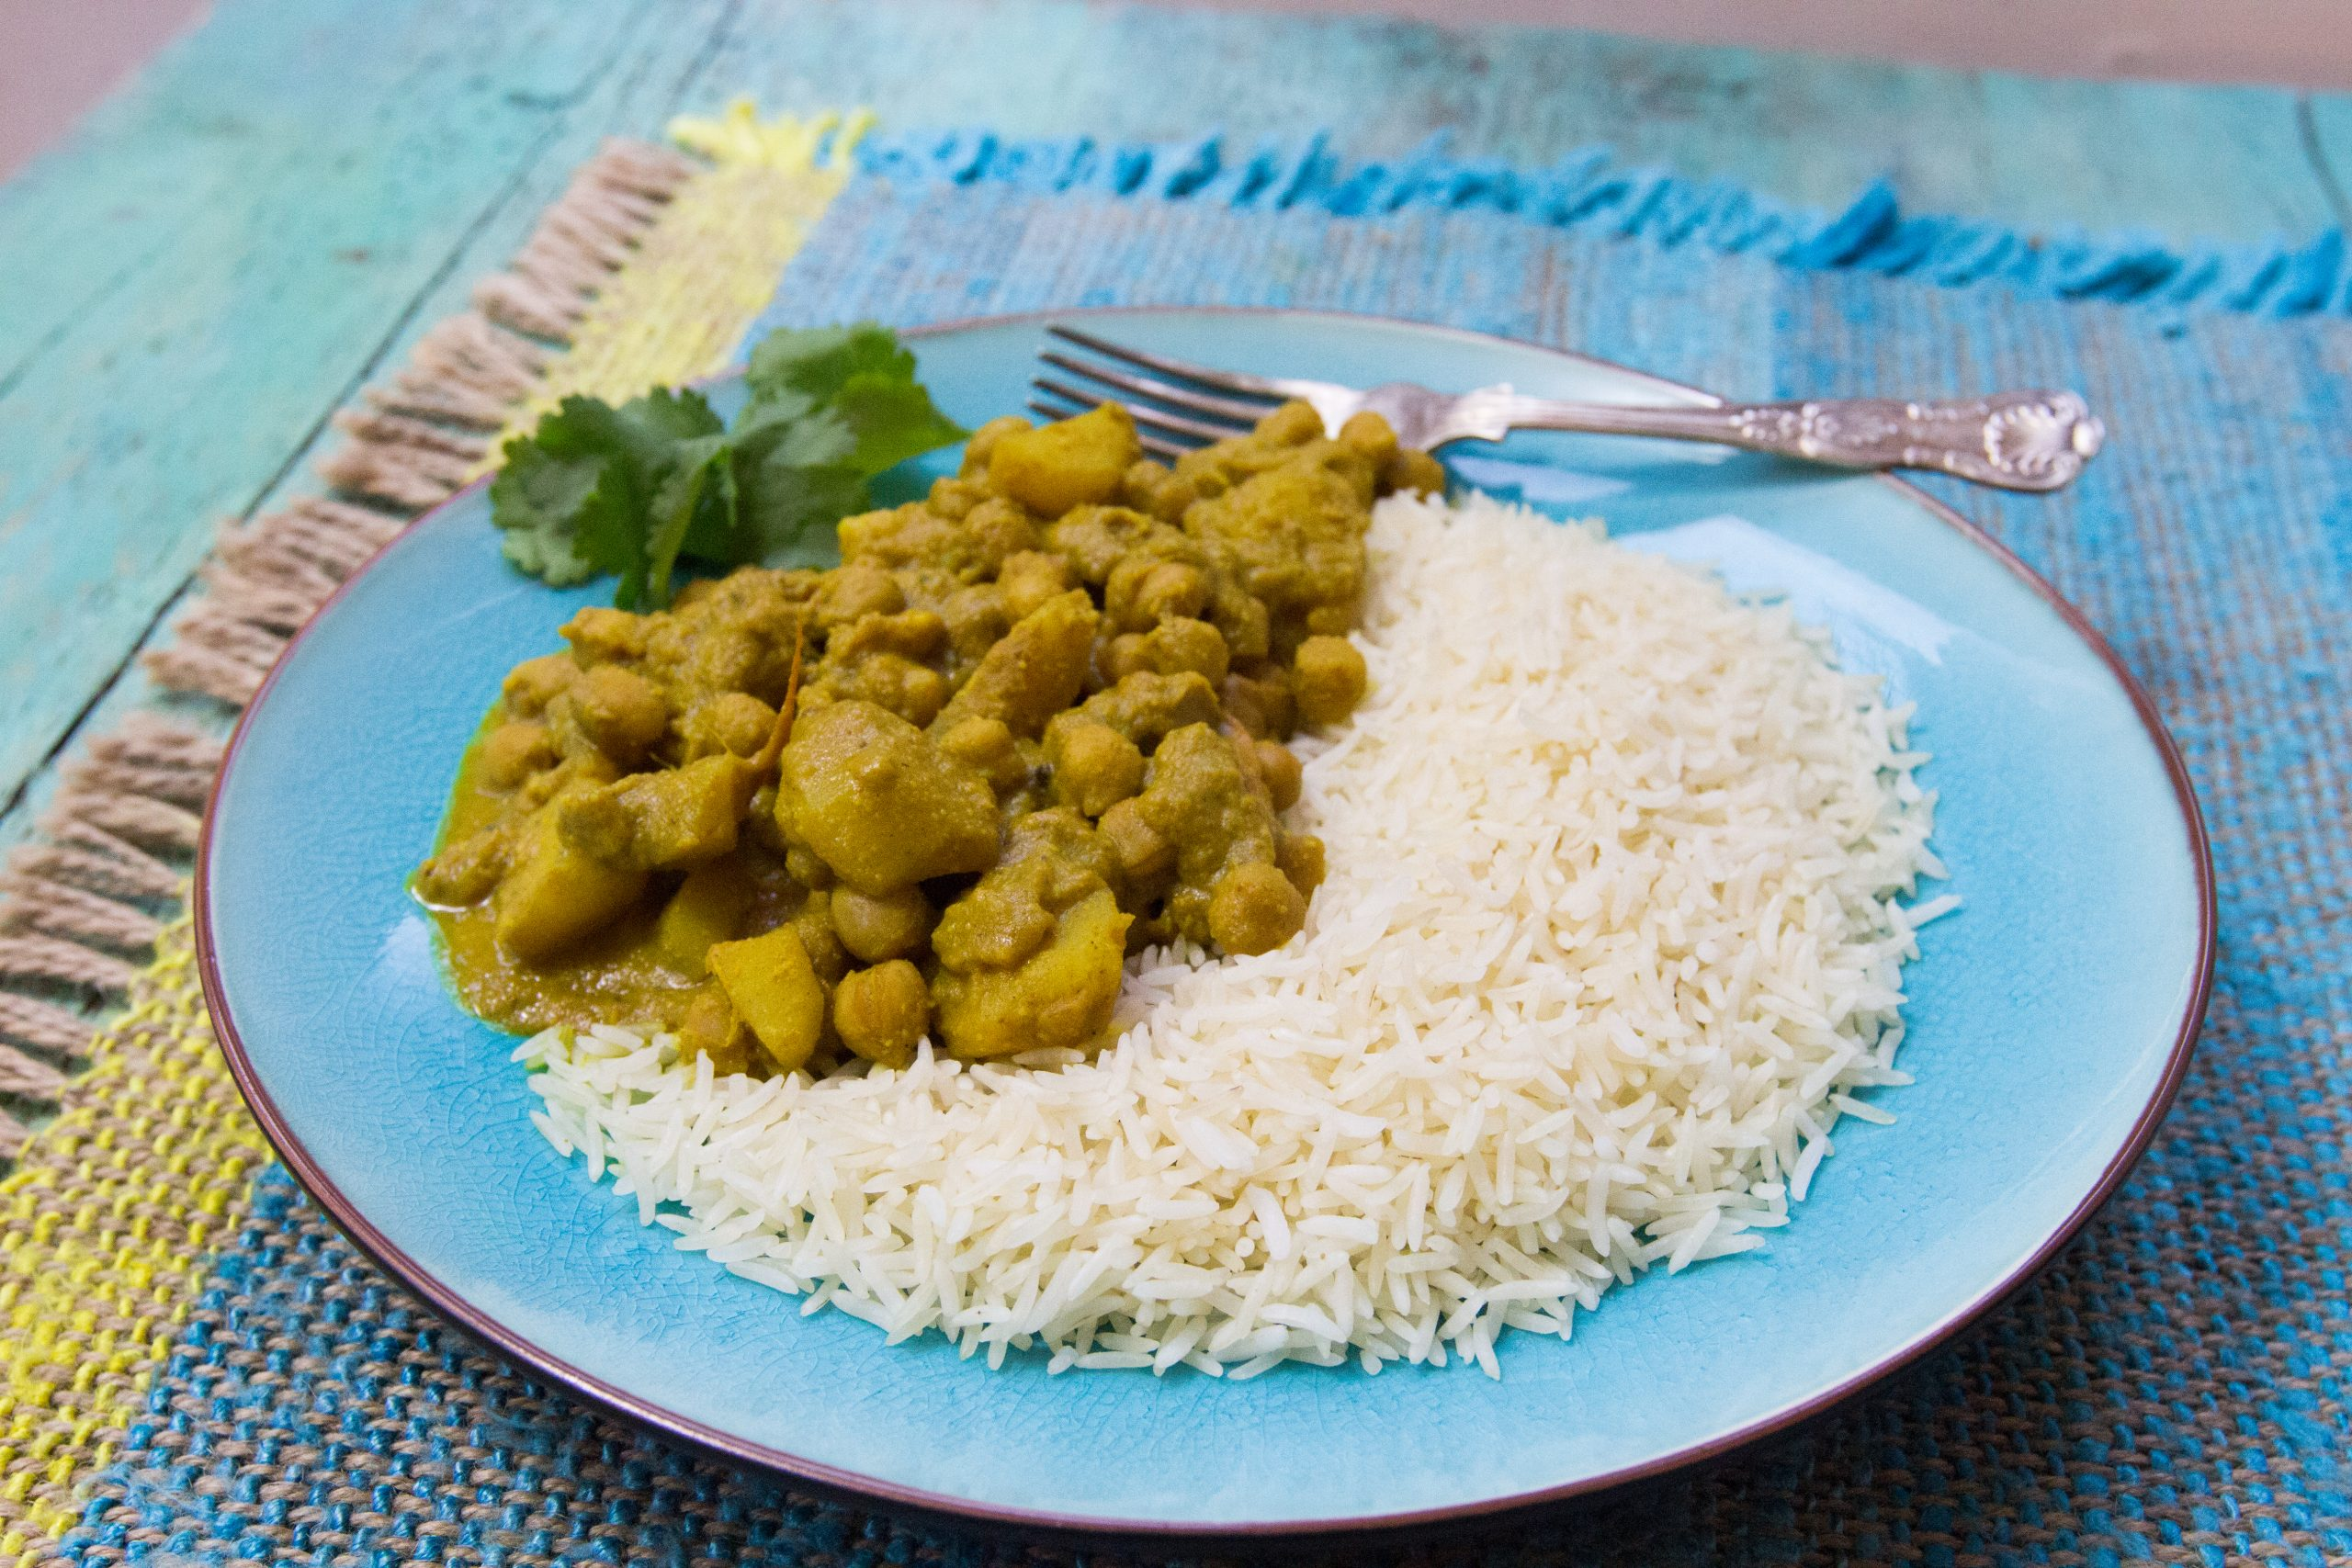 A chickpea curry with rice and a green garnish, set on a blue plate. There is an elegant silver fork sitting on the plate.